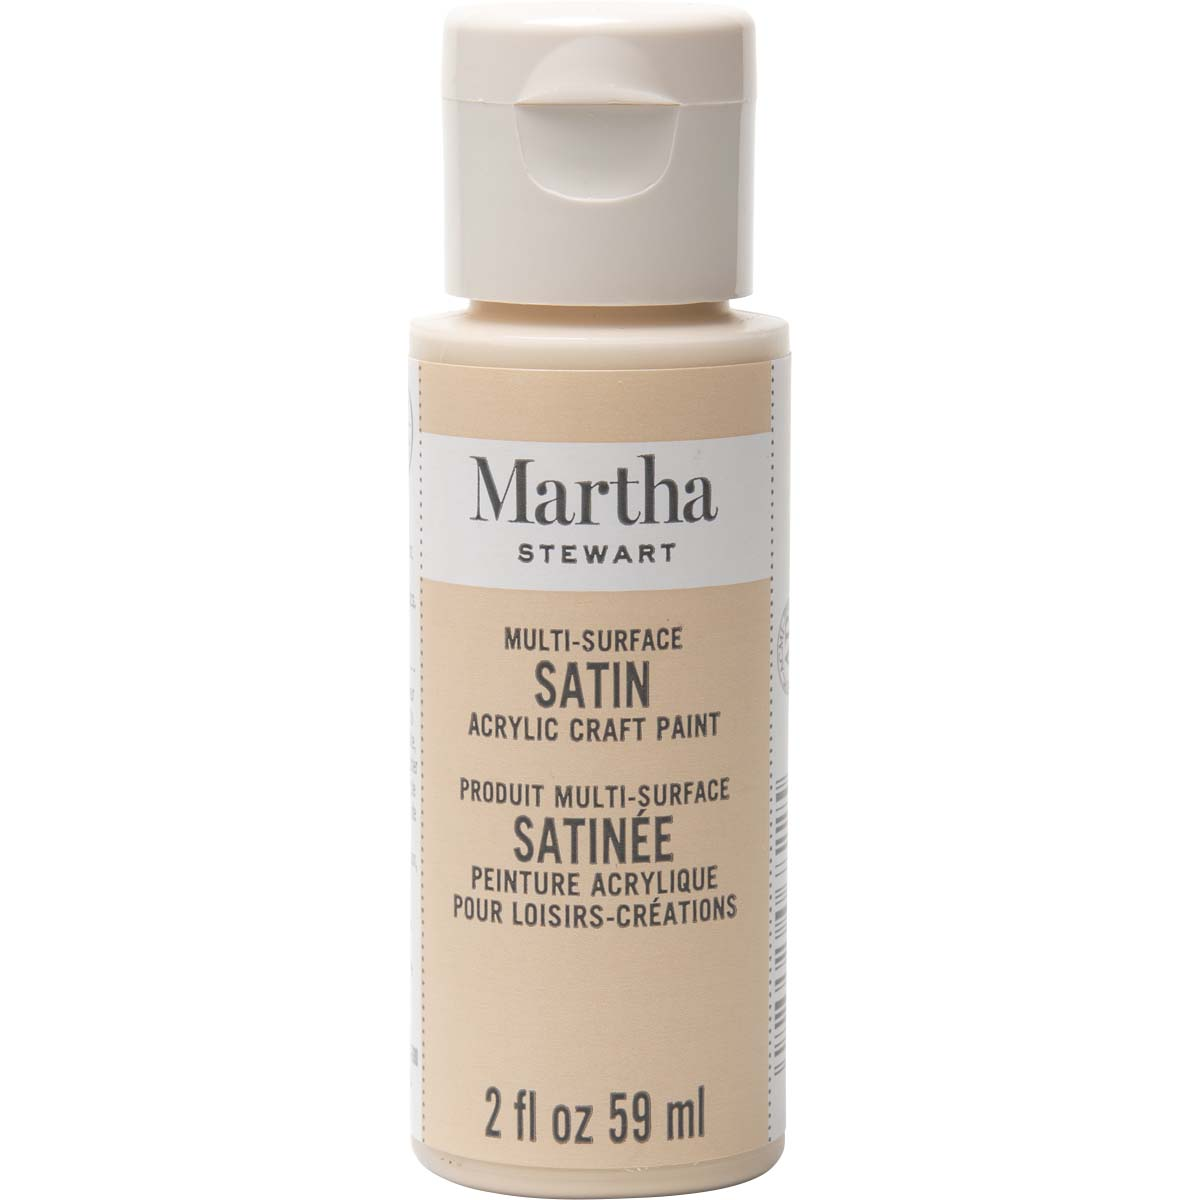 Martha Stewart ® Multi-Surface Satin Acrylic Craft Paint - Sandcastle, 2 oz. - 33571CA